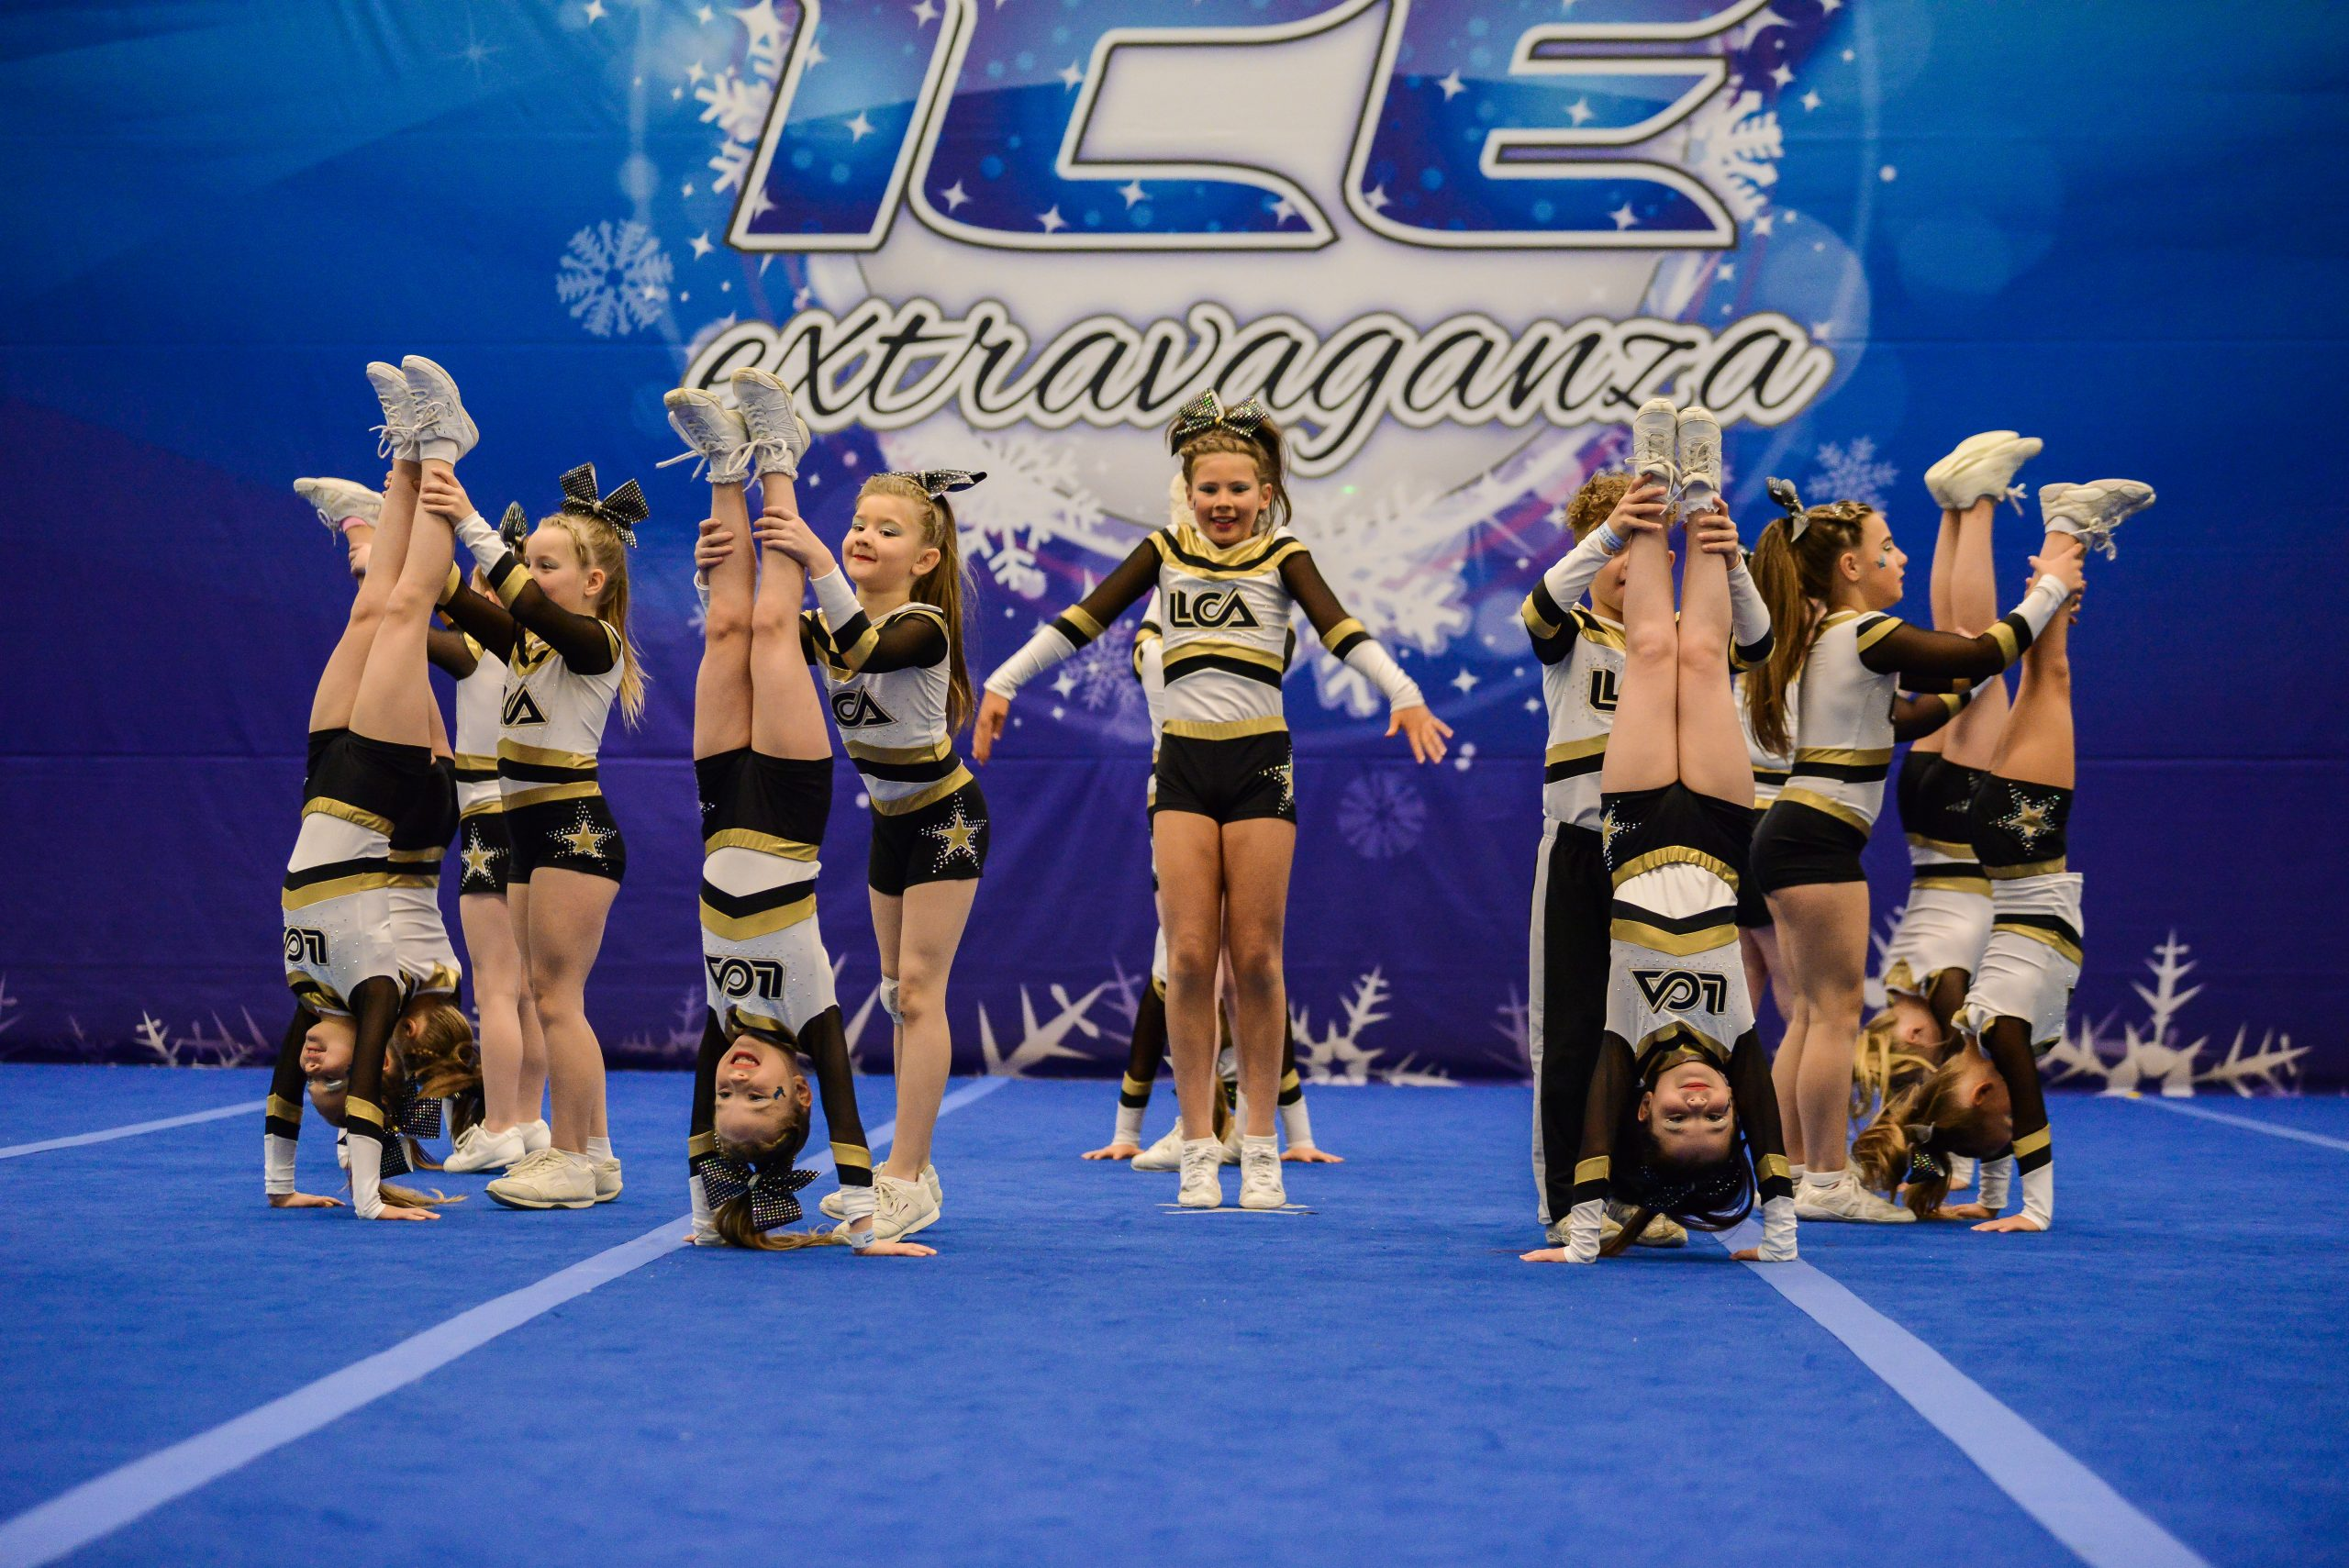 A cheer team in black, white and gold perform handstands